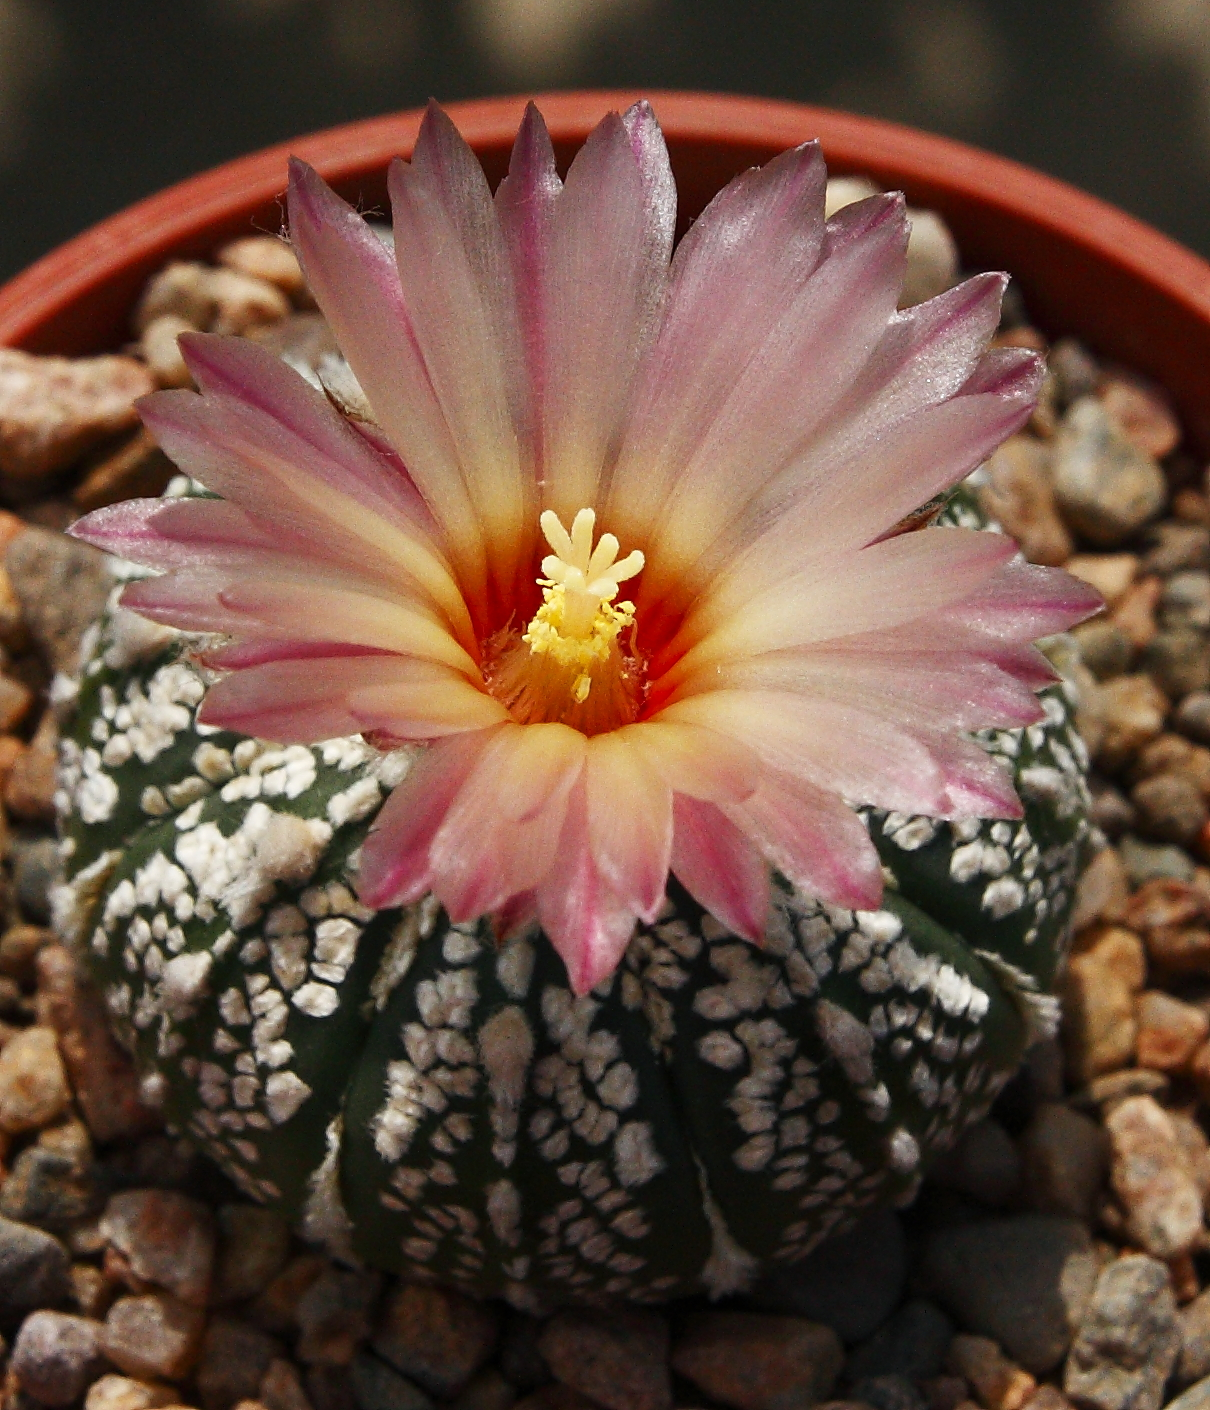 Astrophytum asterias super kabuto flower 4 July 2013 (6).JPG